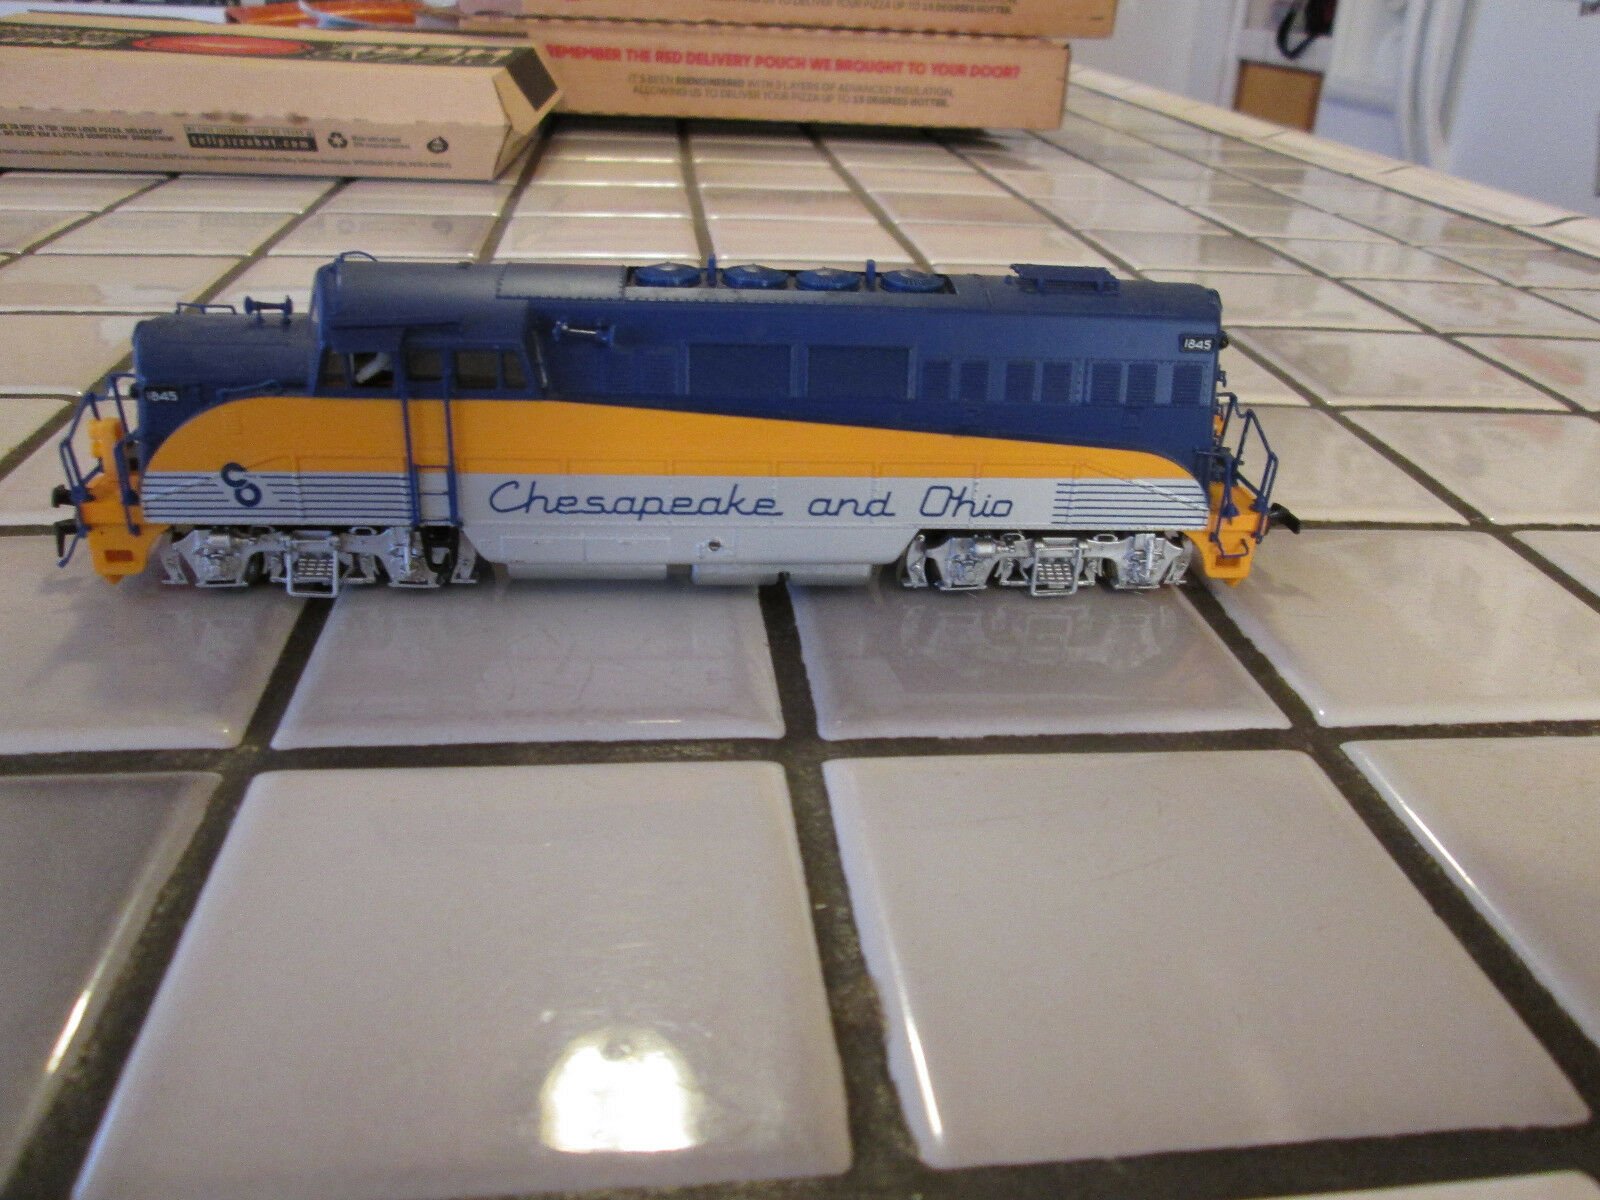 Predo 2000 CHESAPEAKE AND OHIO powered engine HO scale